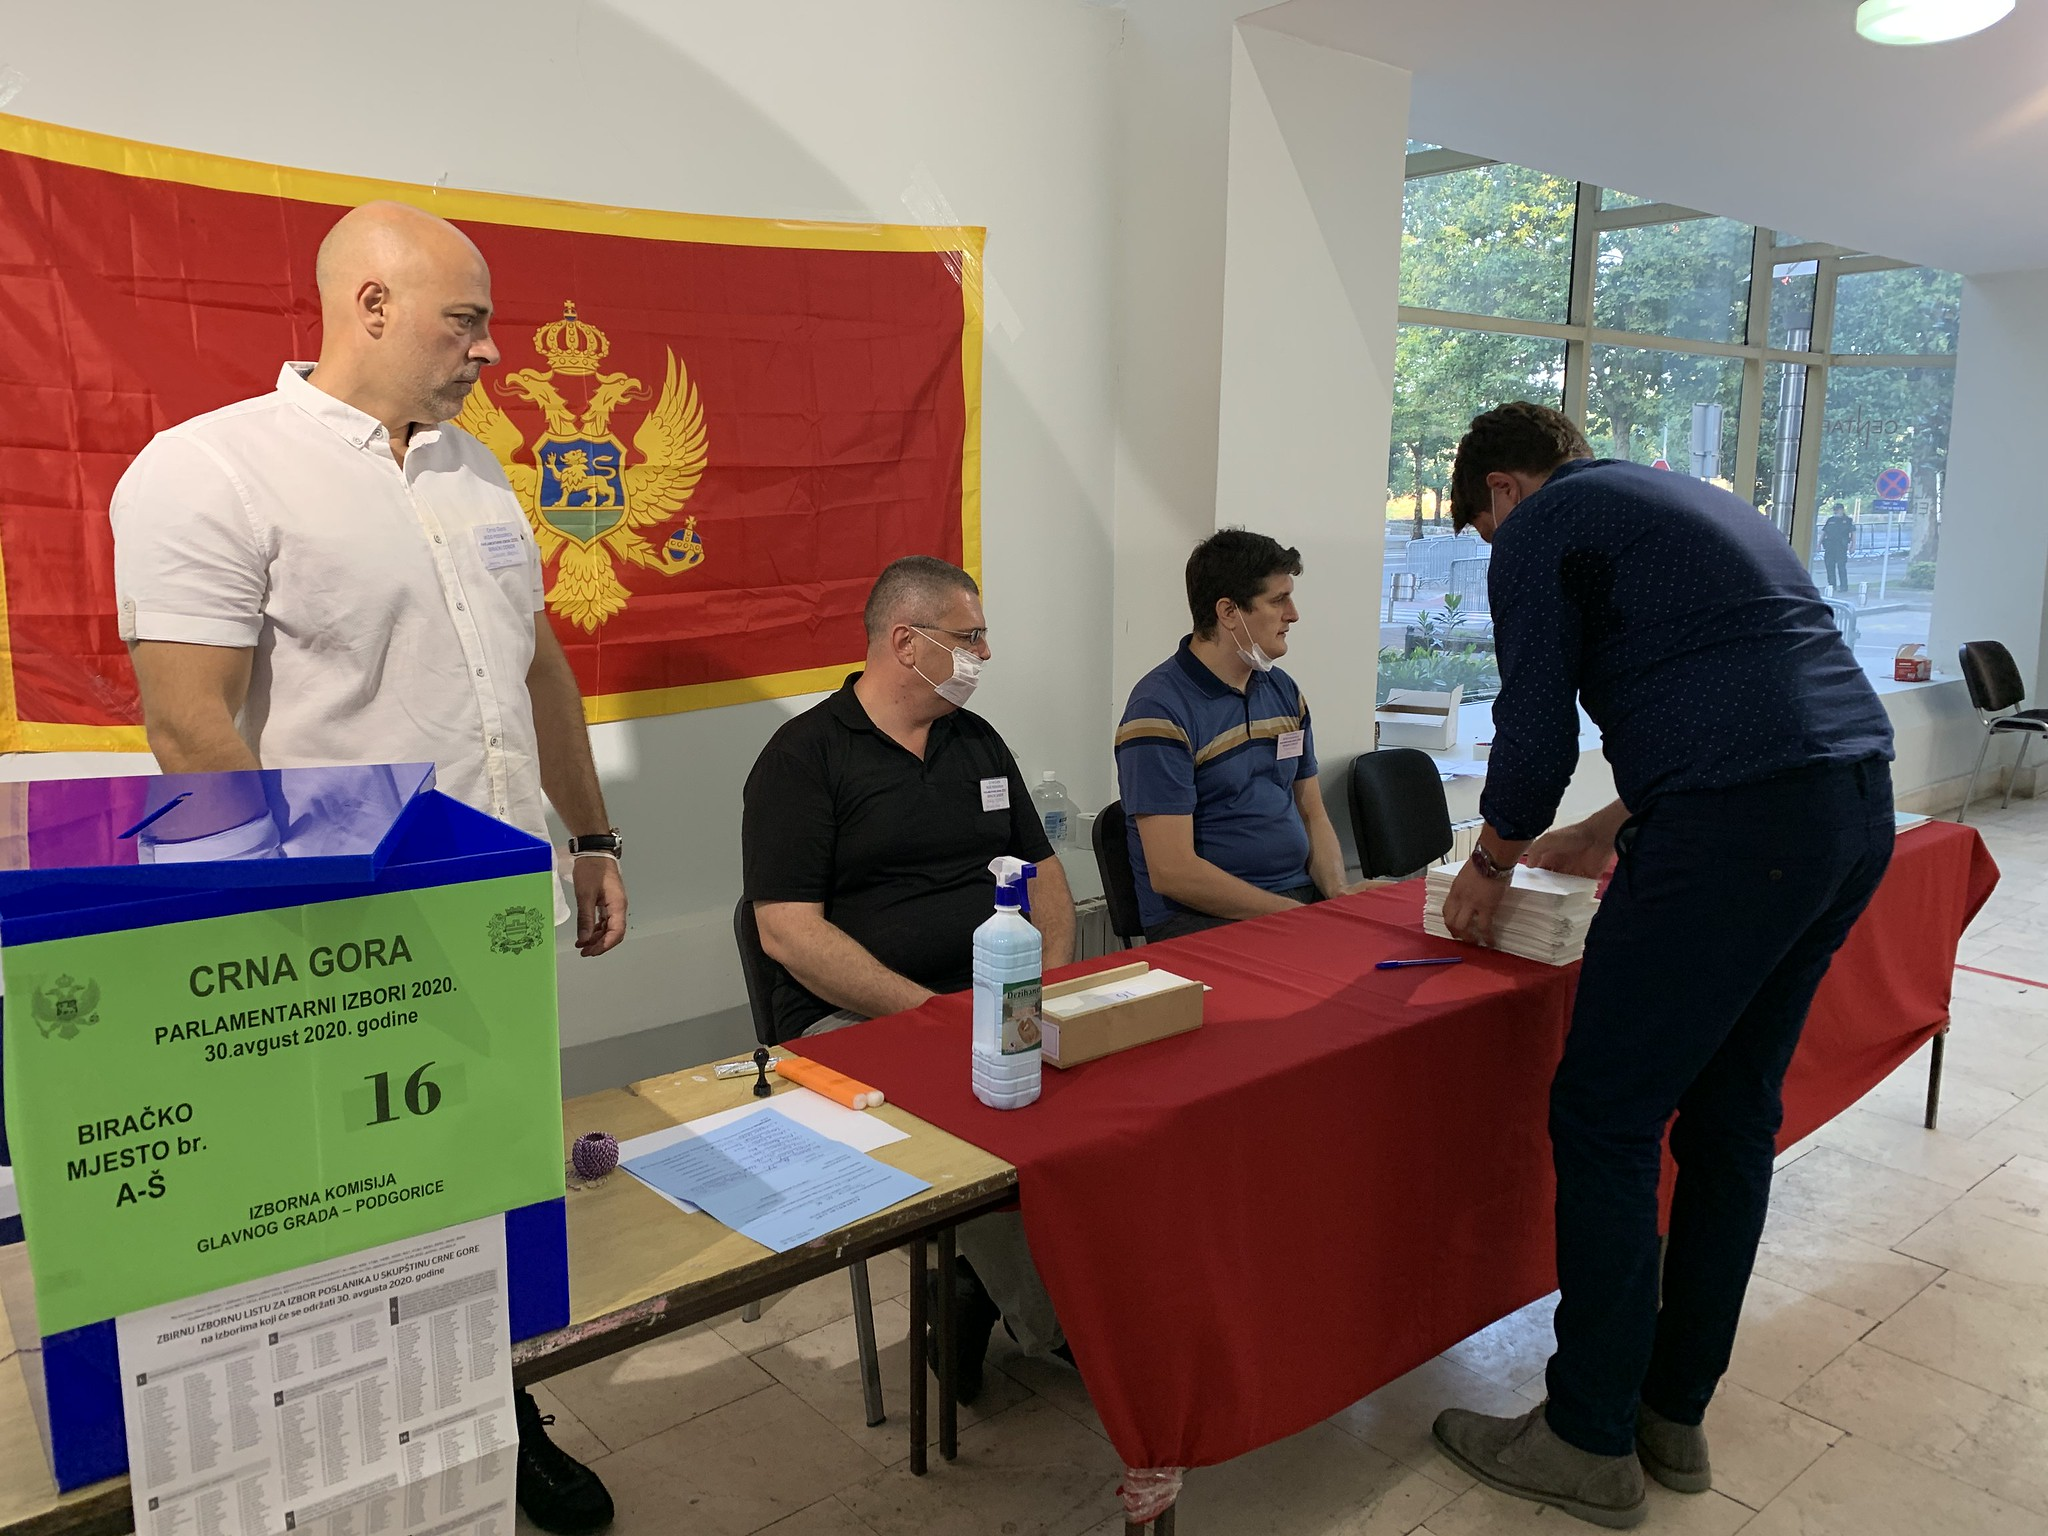 Election observation, Montenegro, 30 August 2020. Credit OSCE Parliamentary Assembly